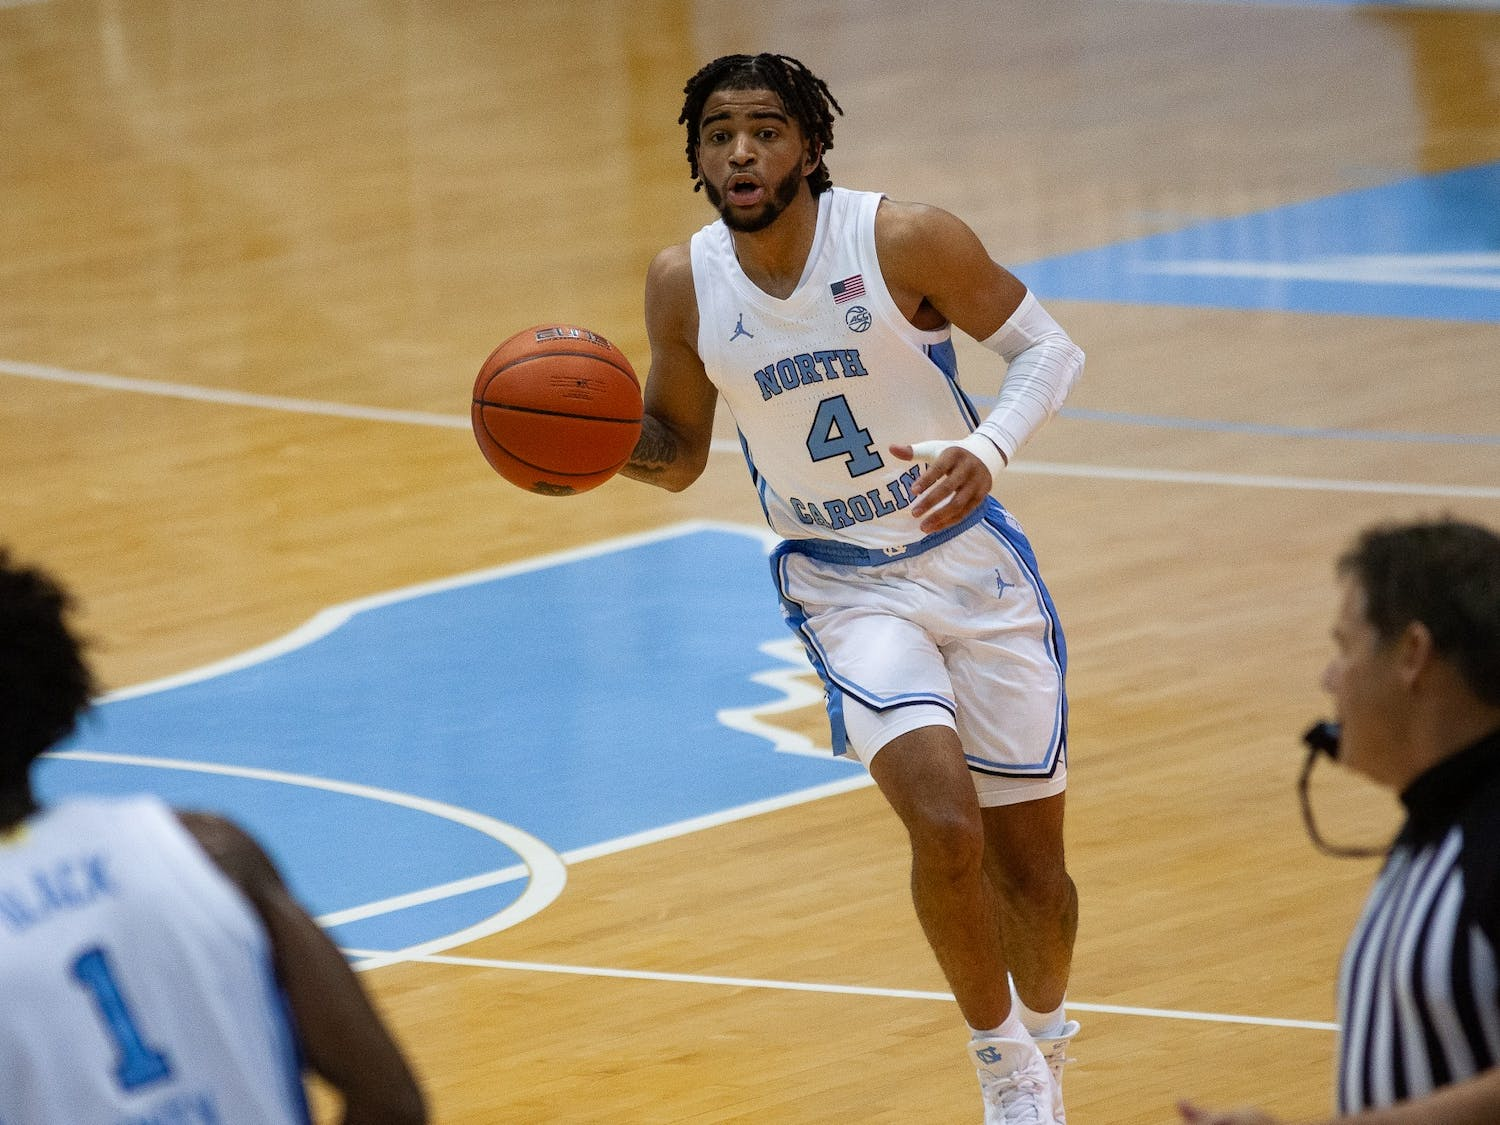 UNC first year guard RJ Davis (4) yells to a teammate during a game against N.C. Central in the Smith Center on Saturday, Dec. 12, 2020. UNC beat N.C. Central 73-67.